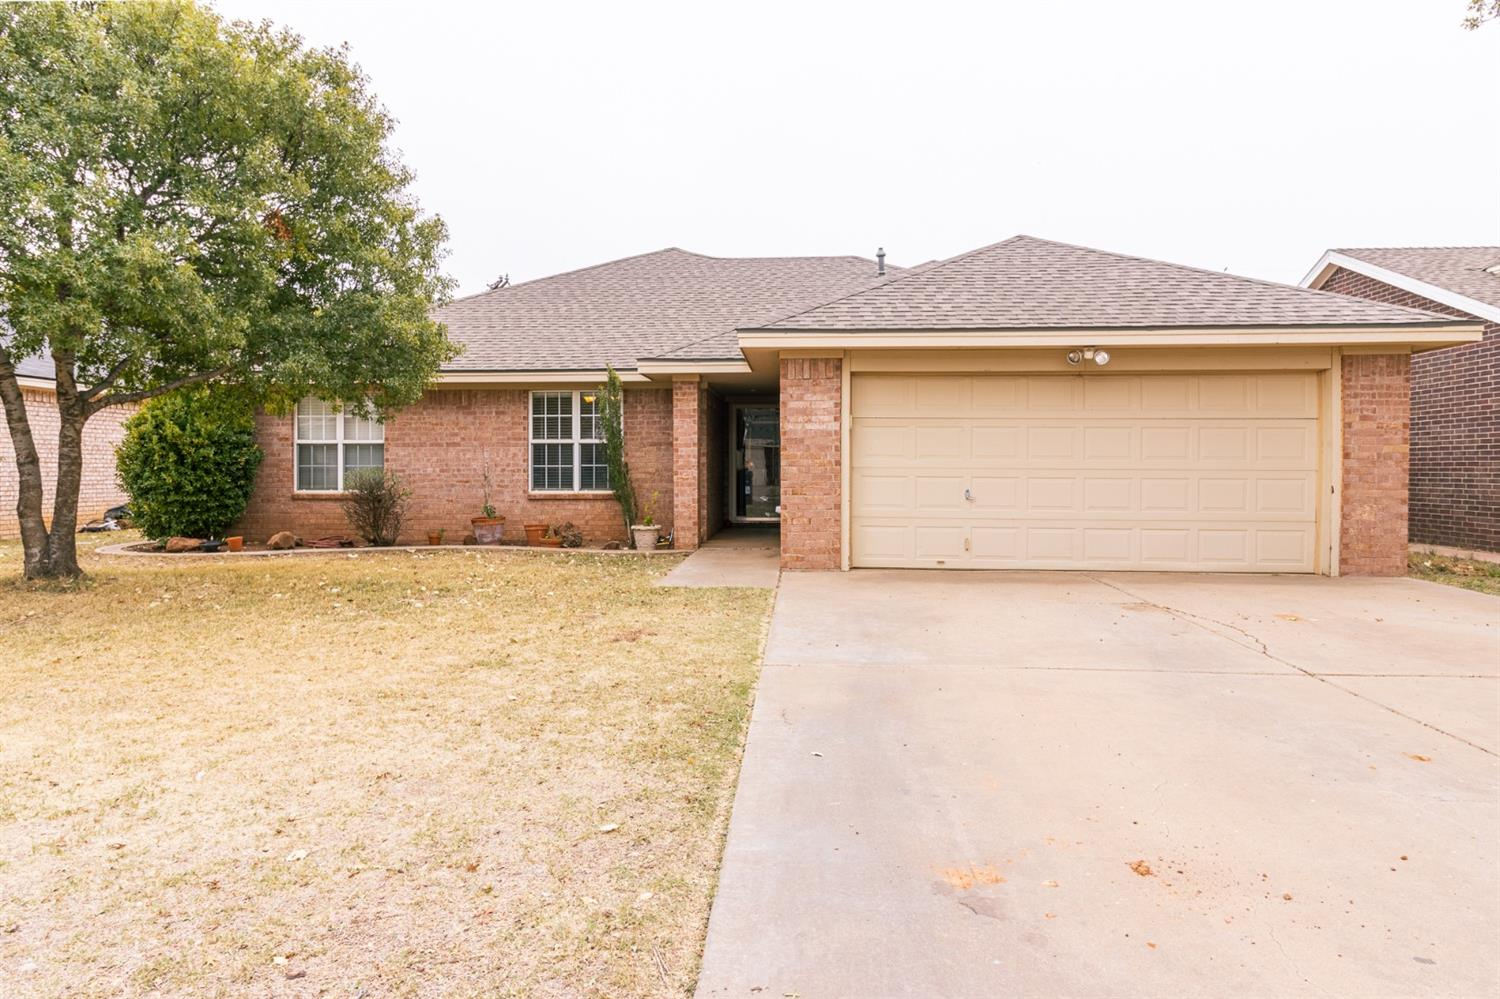 This beautiful home is located on an established street in Shallowater minutes from the schools.  The kitchen features a large island perfect for entertaining, granite countertops and a spacious pantry.  The isolated master showcases double closets, a soaking tub and double sinks.  Other features include a basement, an extra room that could be used as an office/playroom/second living space. Plus abundant storage, an upgraded Carrier Infinity AC System, an attached storage room with electricity and so much more.  Call for your showing today!